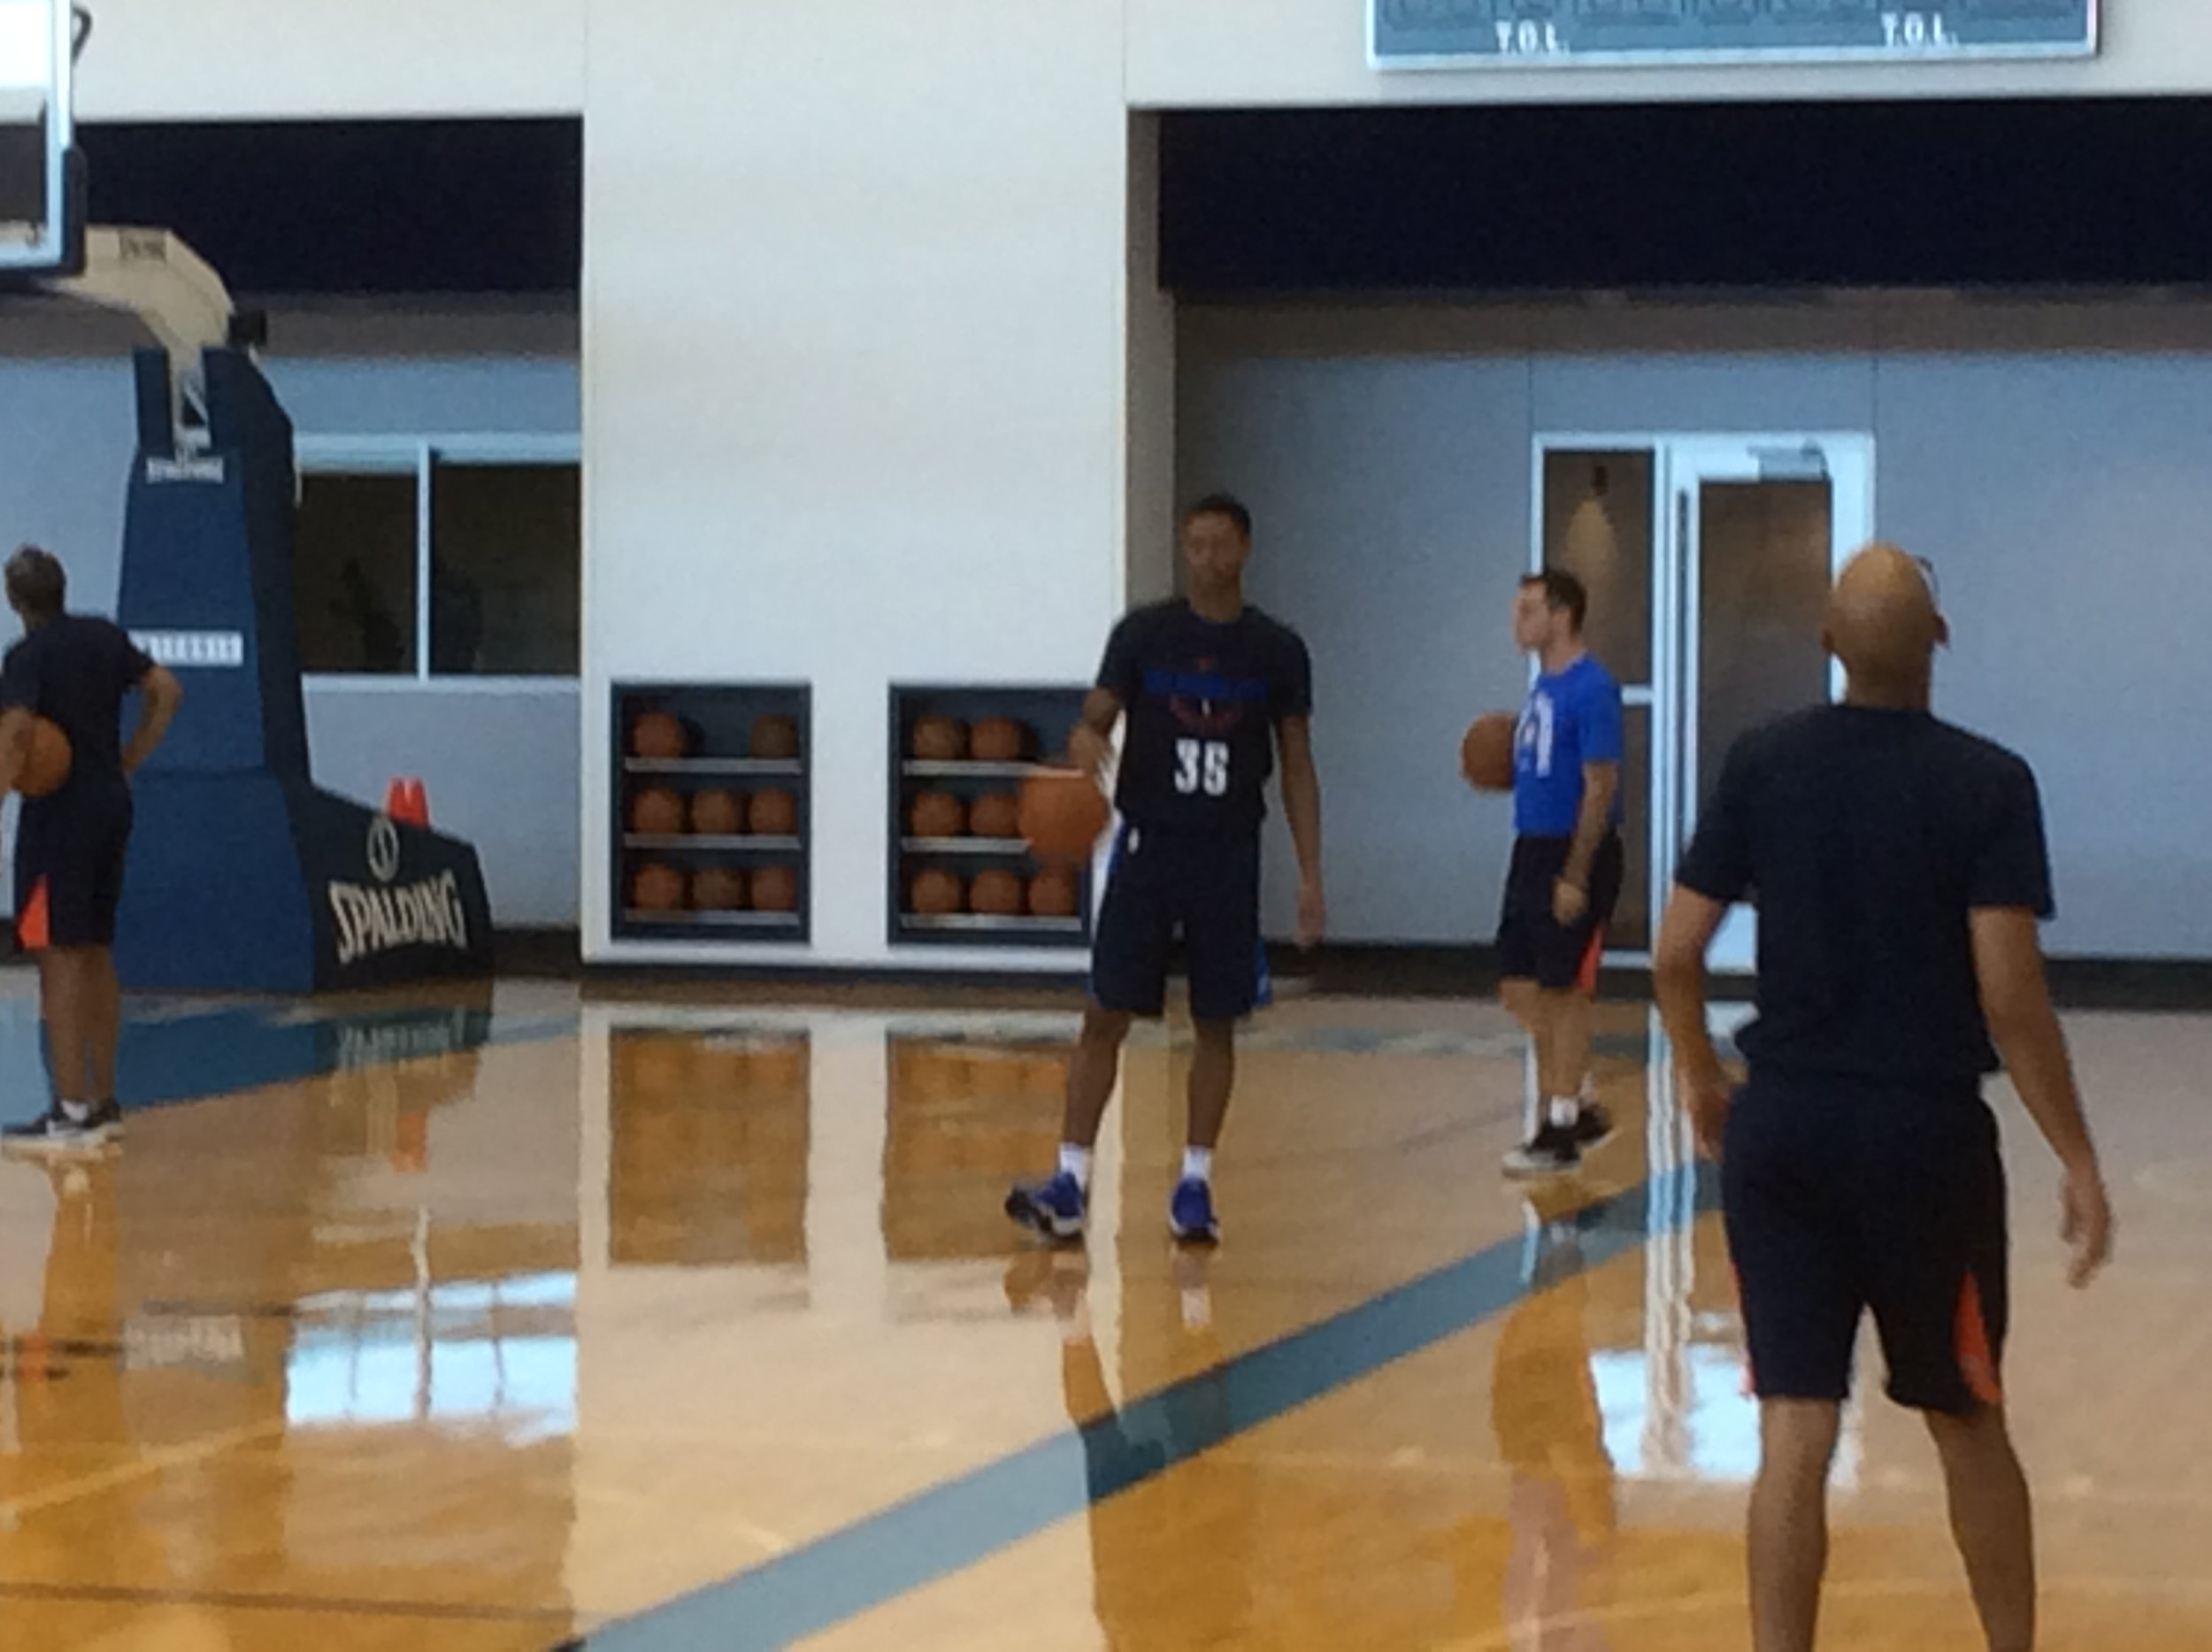 P.J. Dozier at Tuesday's Thunder practice wearing a familiar number.